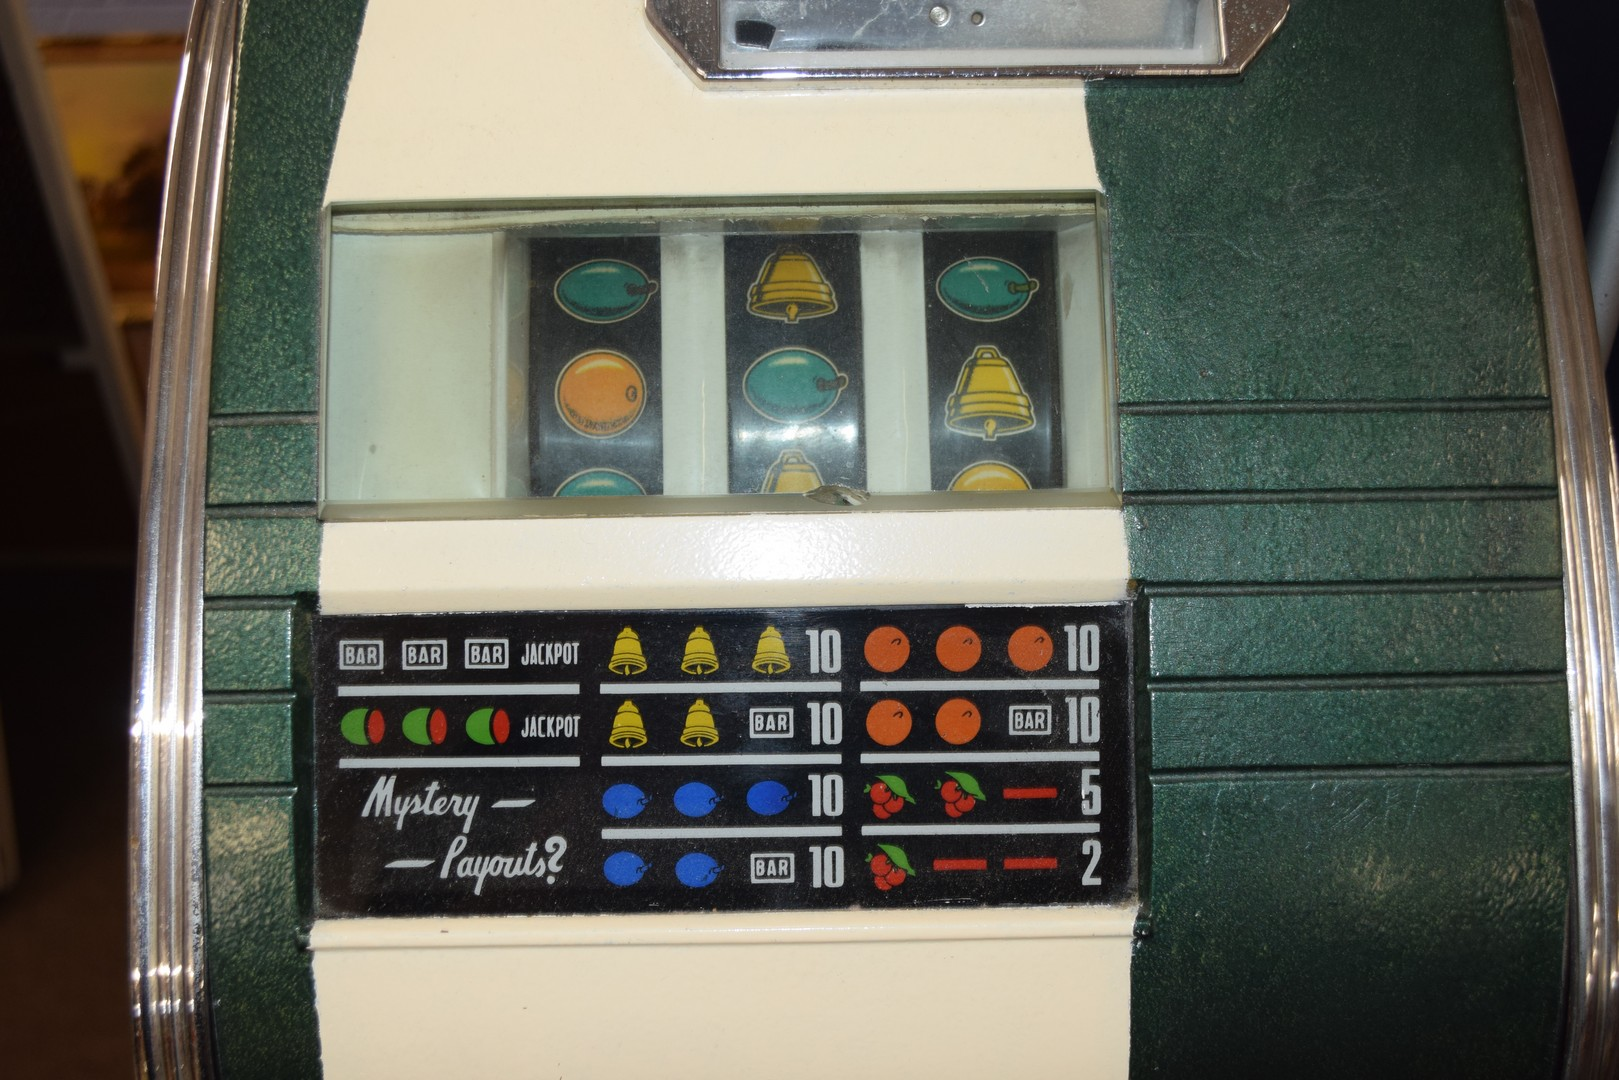 Bonus Star by Sega one-armed bandit fruit machine with electric light-up, approx 80cm high, together - Image 11 of 11